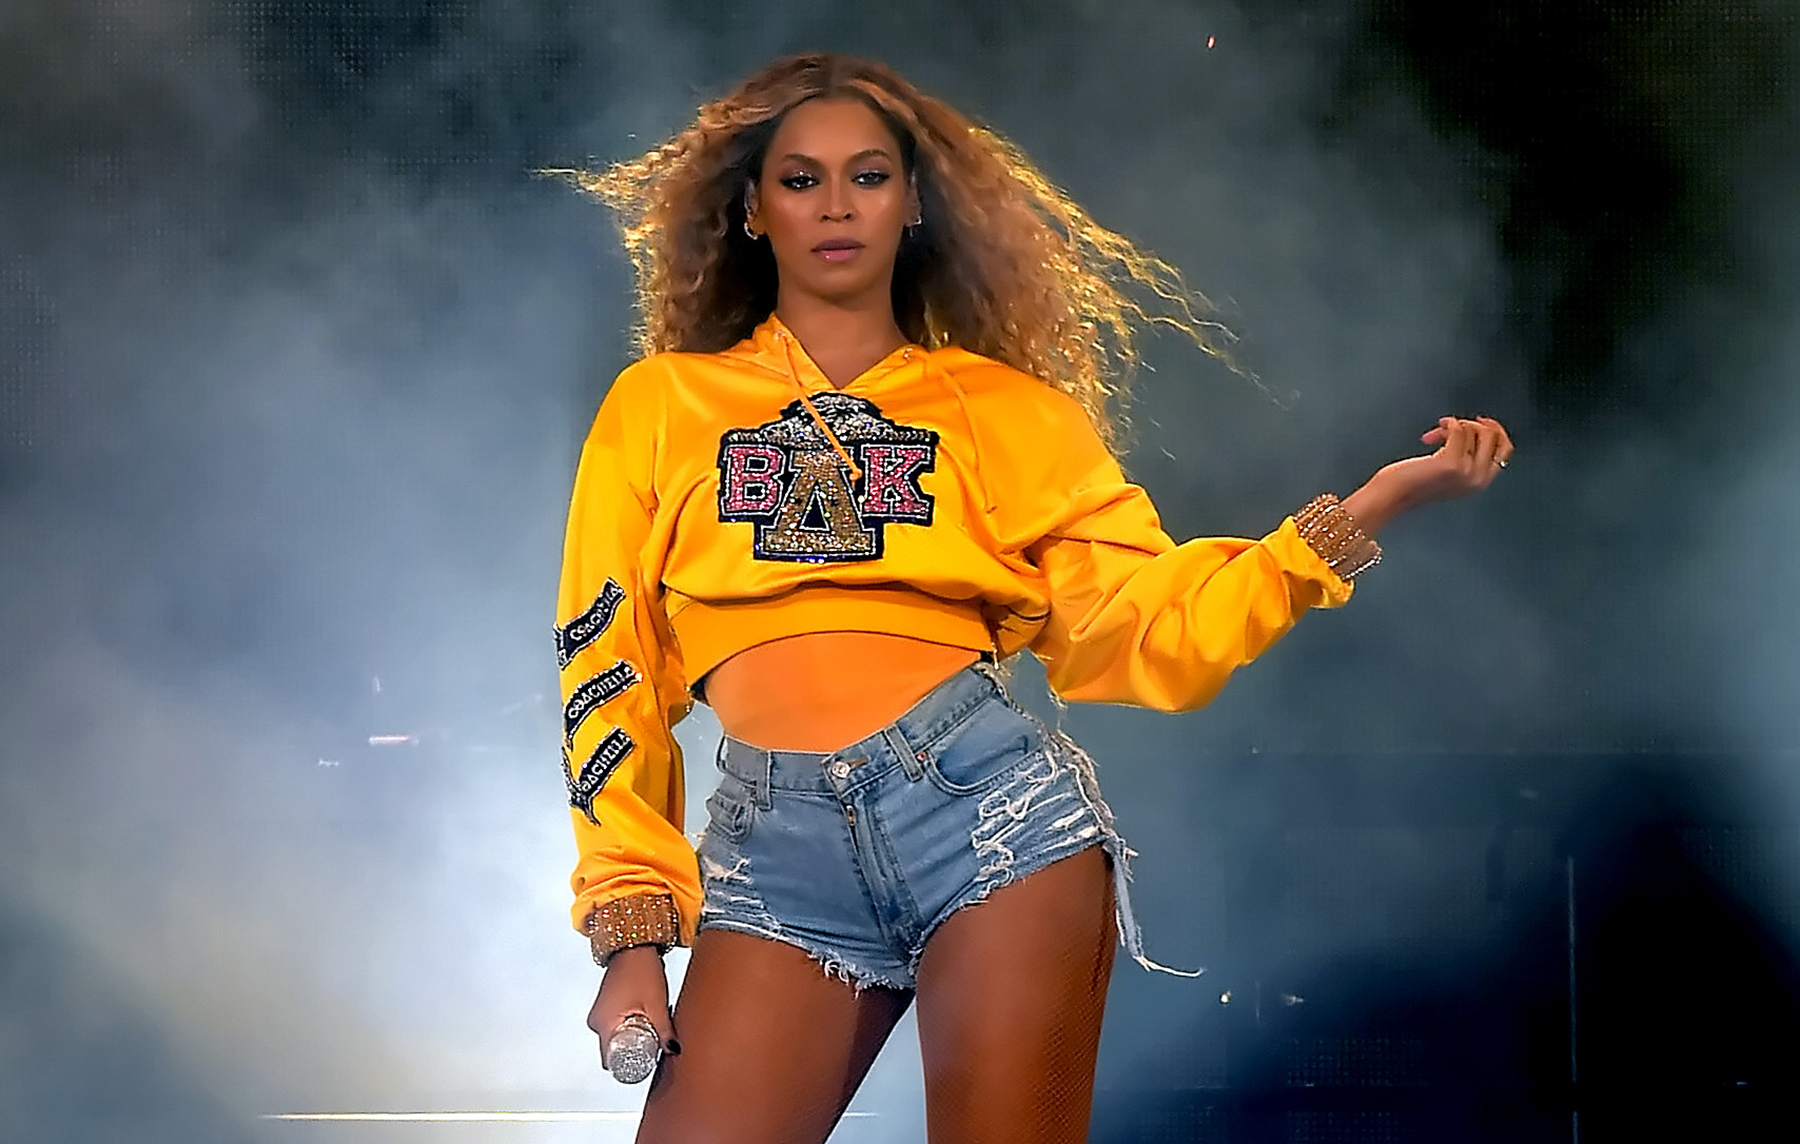 Beyonce Reveals the Super Strict Diet She Started Post-Twins - Beyonce Knowles performs during 2018 Coachella Valley Music And Arts Festival at the Empire Polo Field on April 14, 2018 in Indio, California.